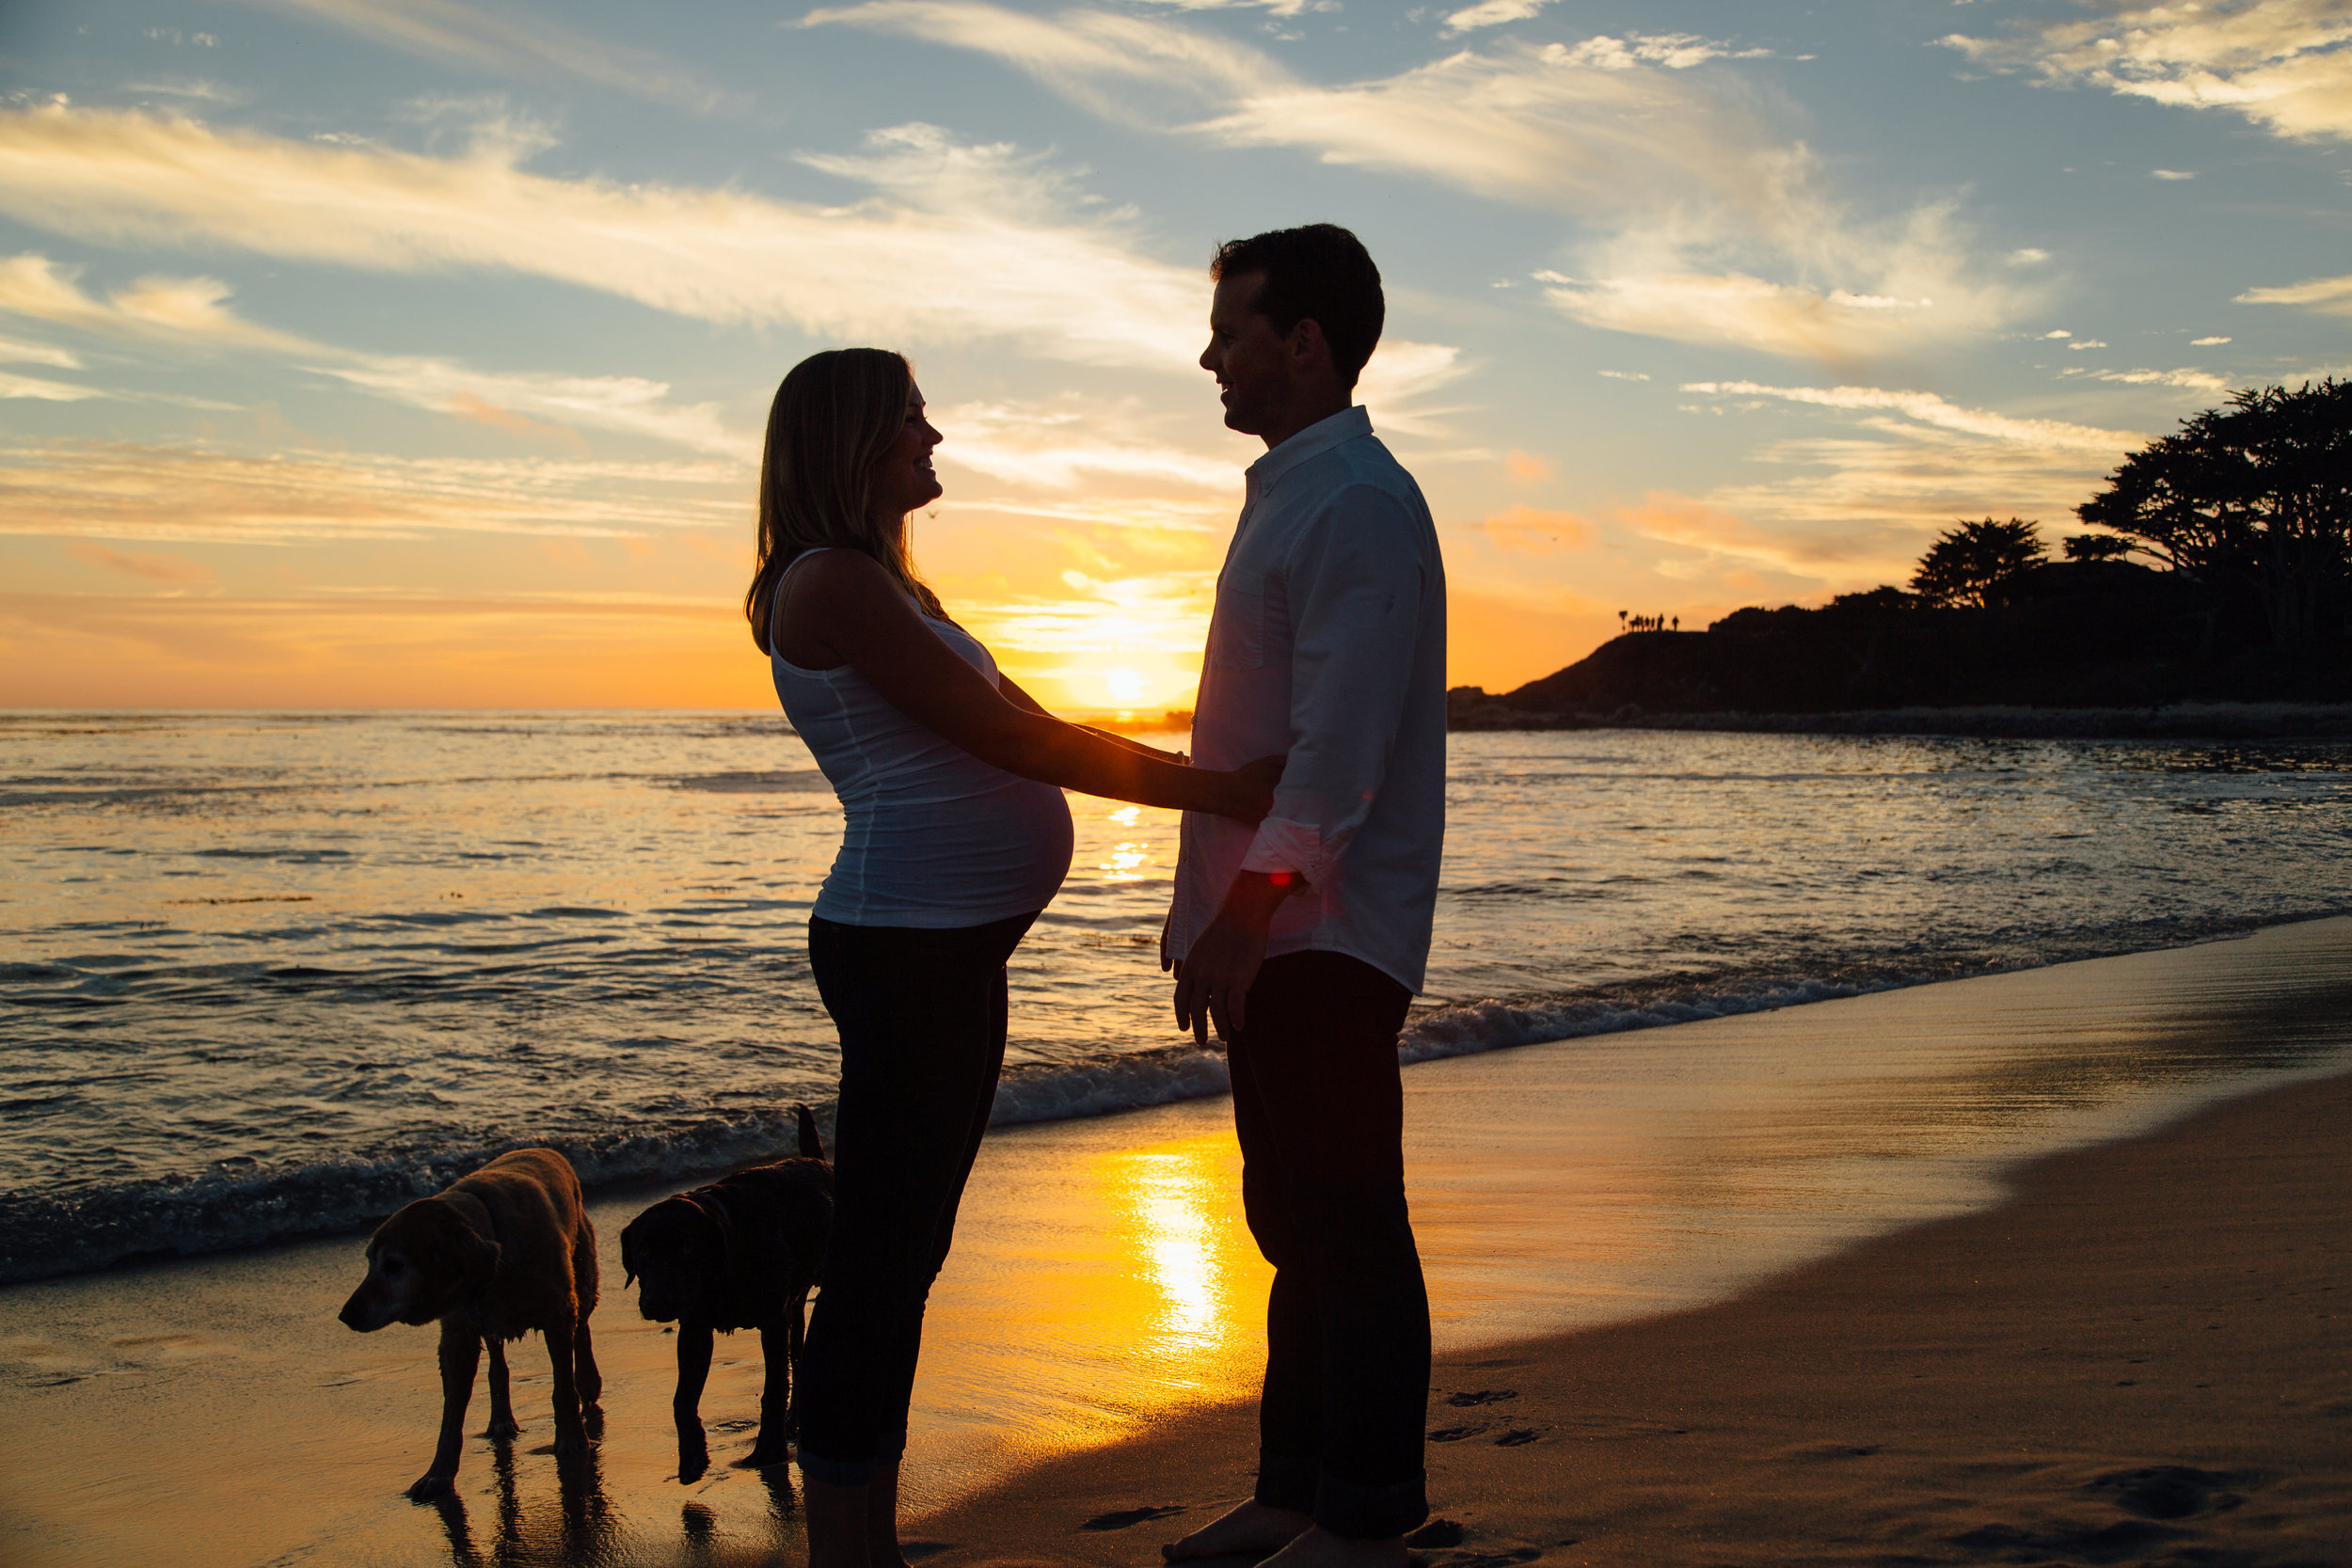 Pregnancy_Kindra&Connell_20140916_2752.jpg